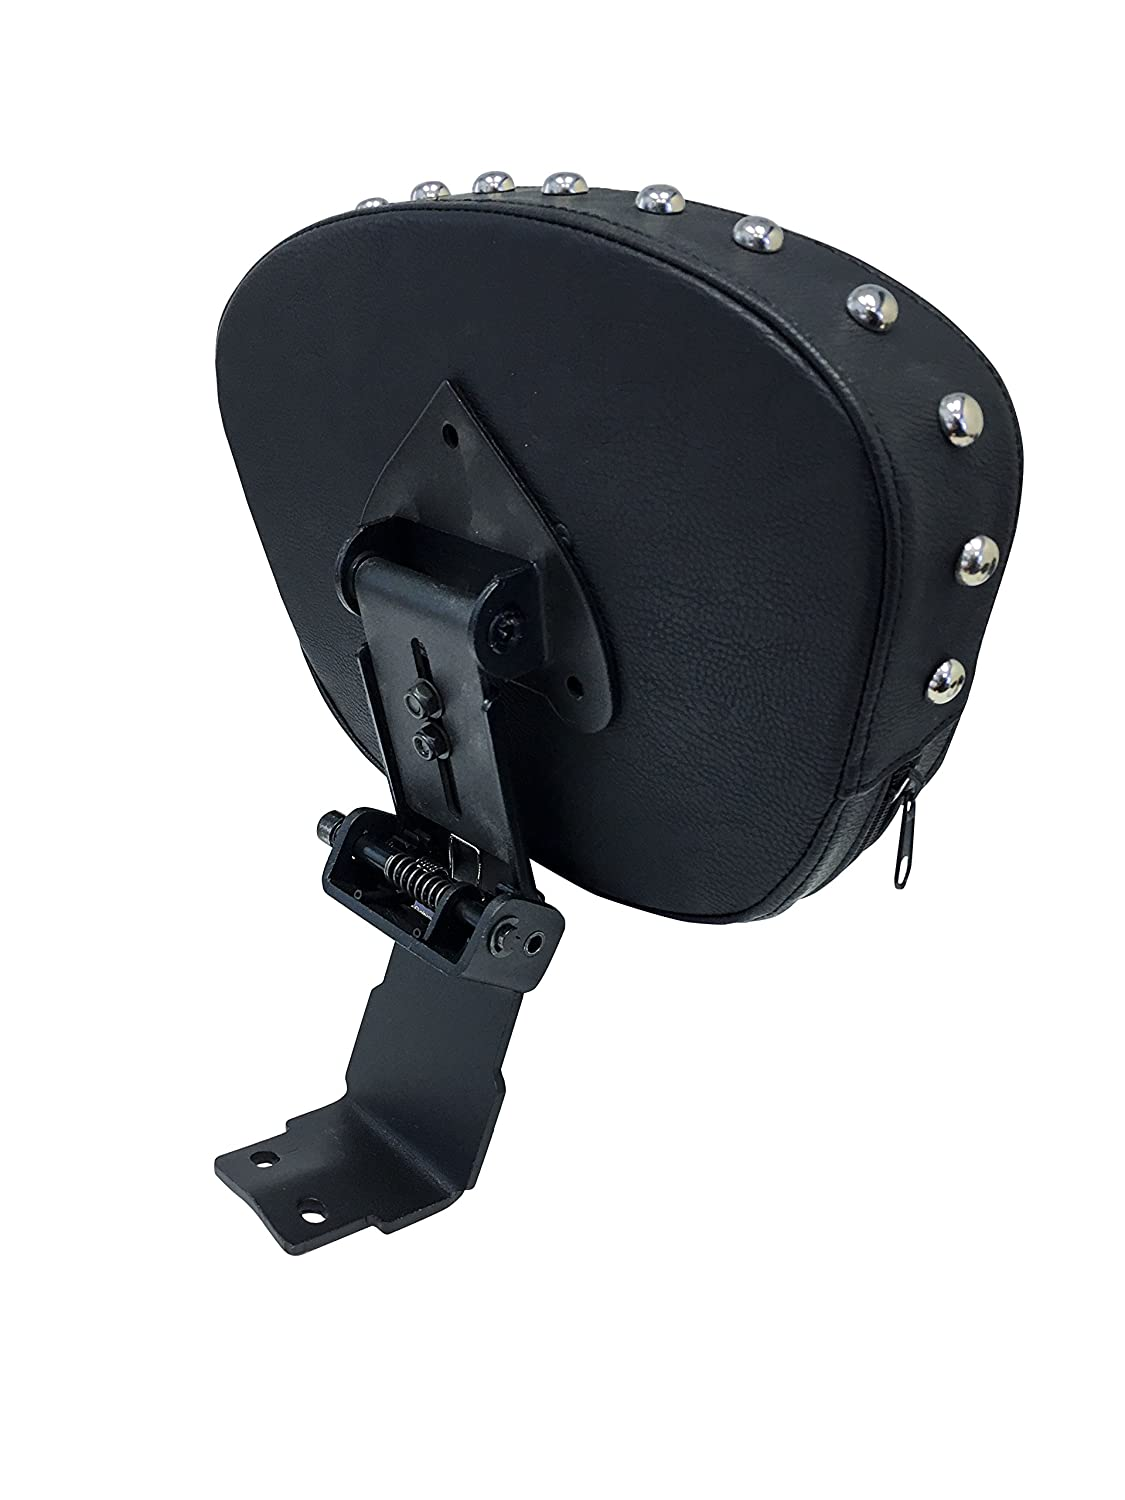 Studded Contoured Fully Adjustable Drivers Backrest for 00 Yamaha V-Star 1100 Classic